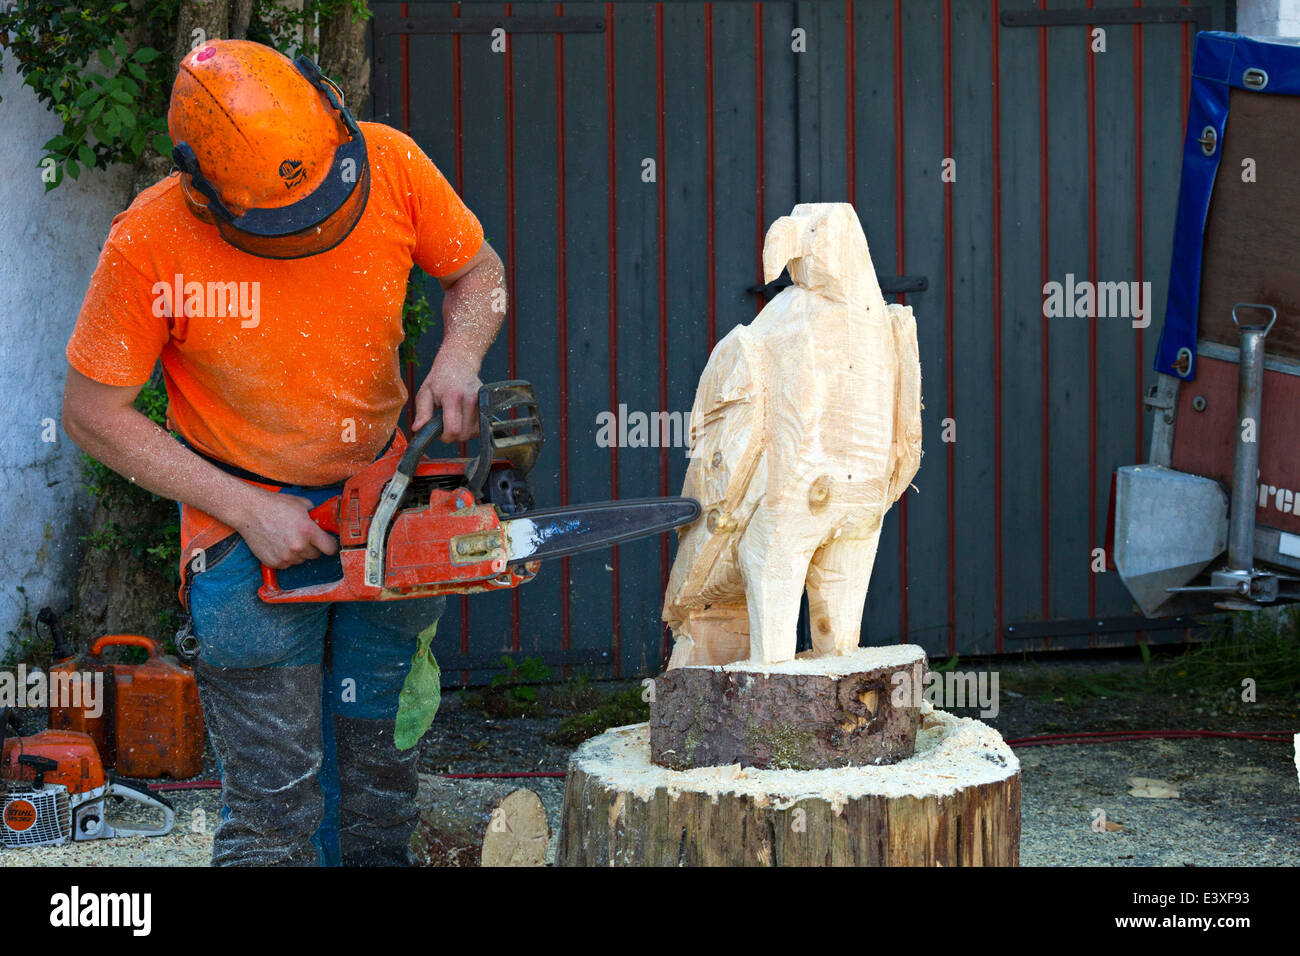 Chain saw wood carving stock photos